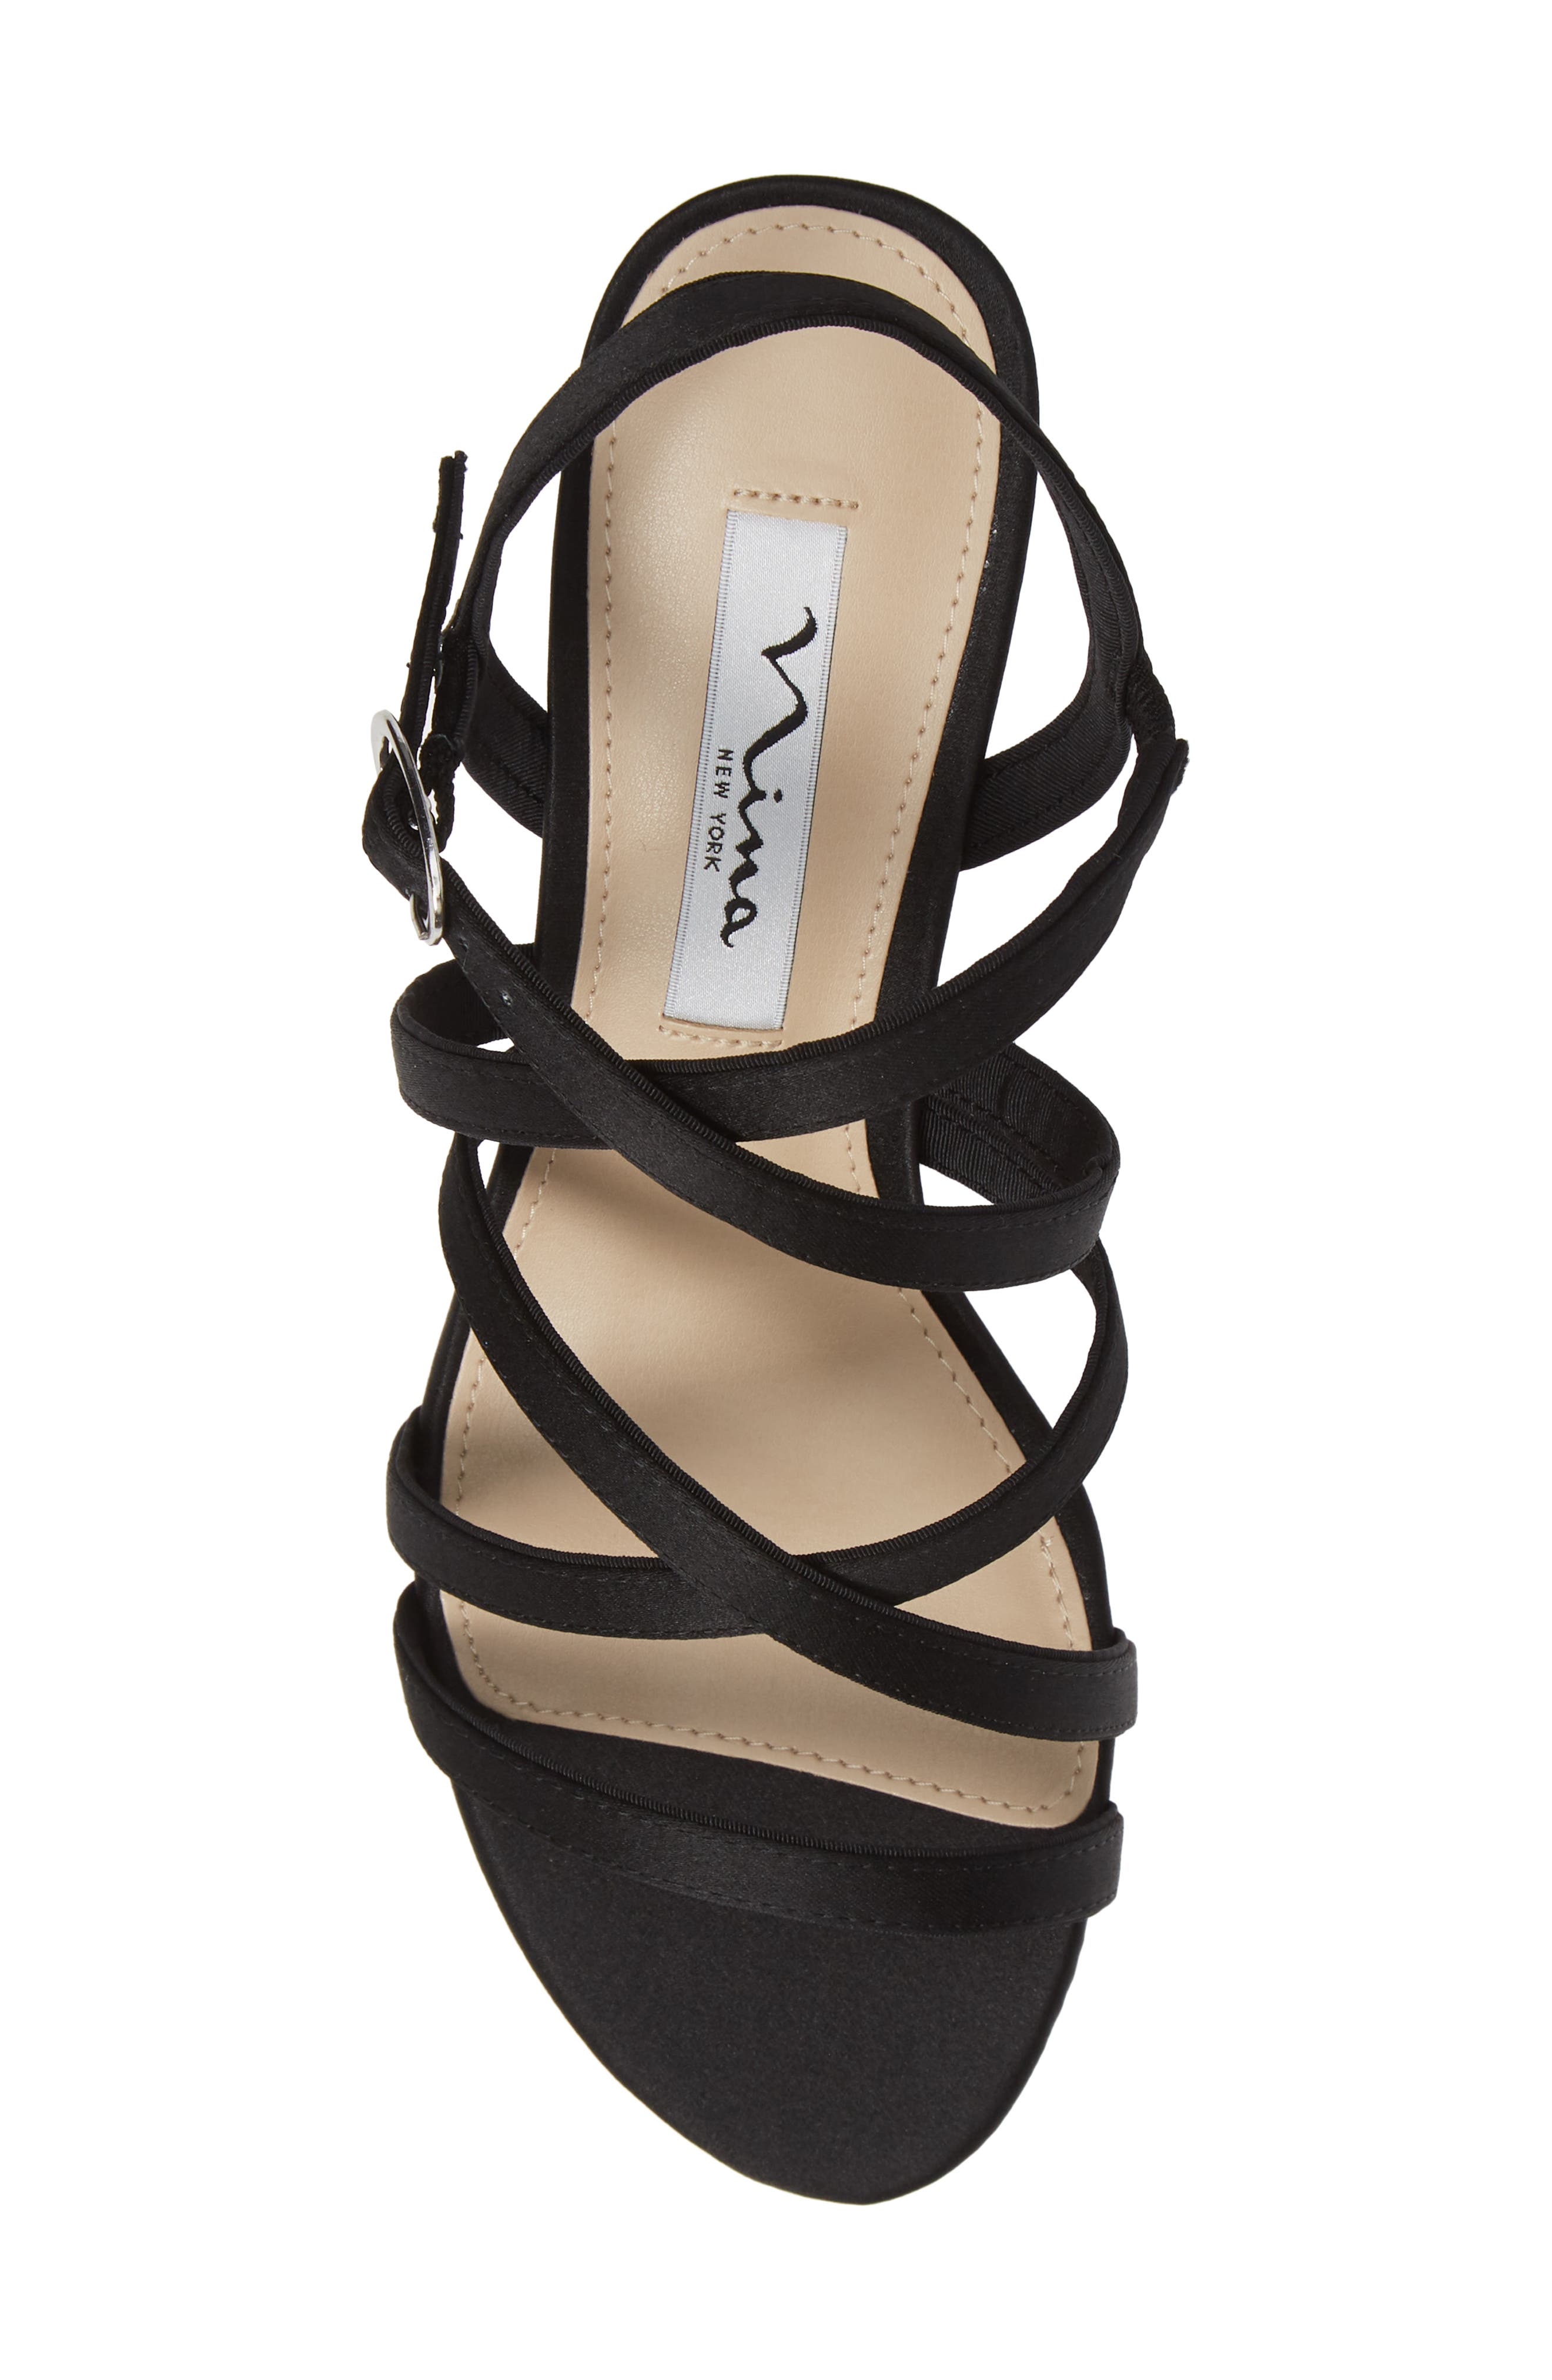 Genaya Strappy Evening Sandal,                             Alternate thumbnail 5, color,                             BLACK SATIN